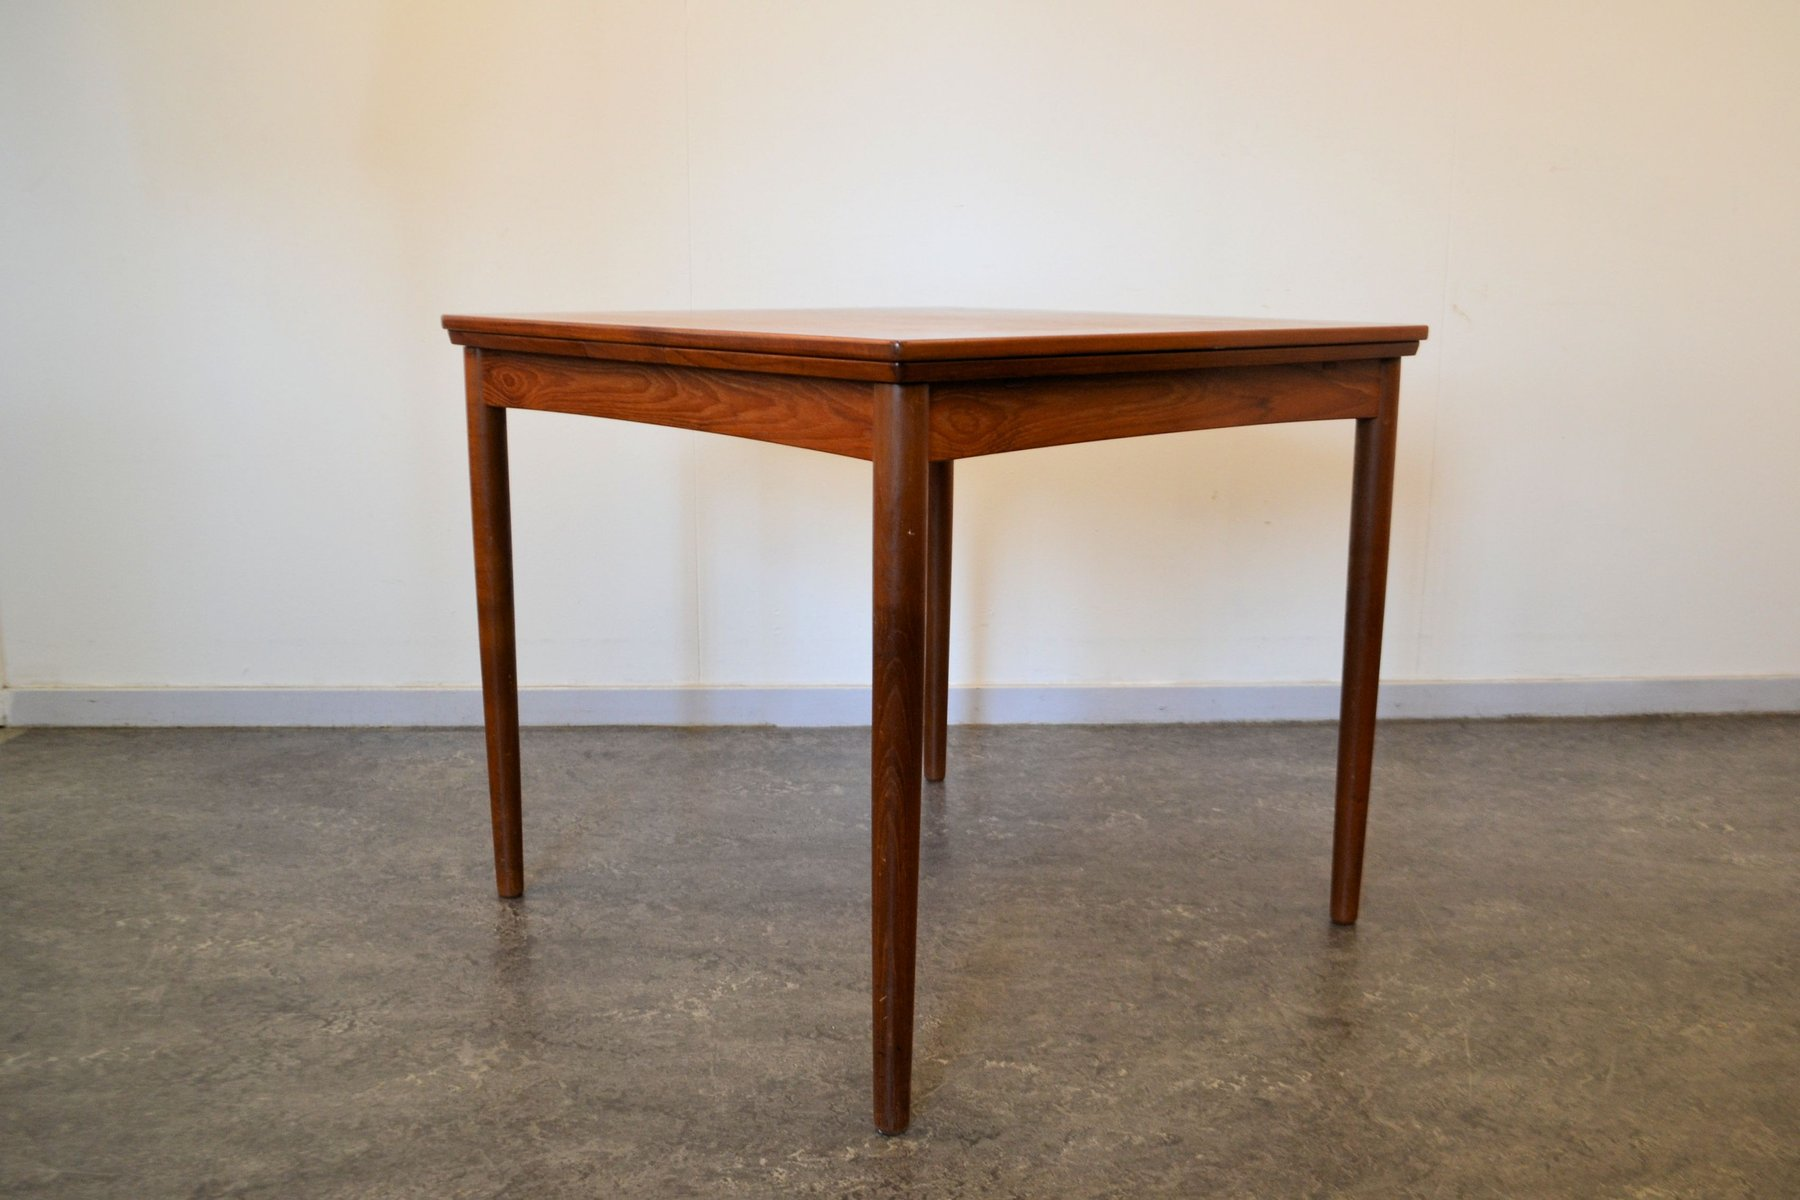 Great Vintage Danish Extendable Teak Dining Table By Poul Hundevad